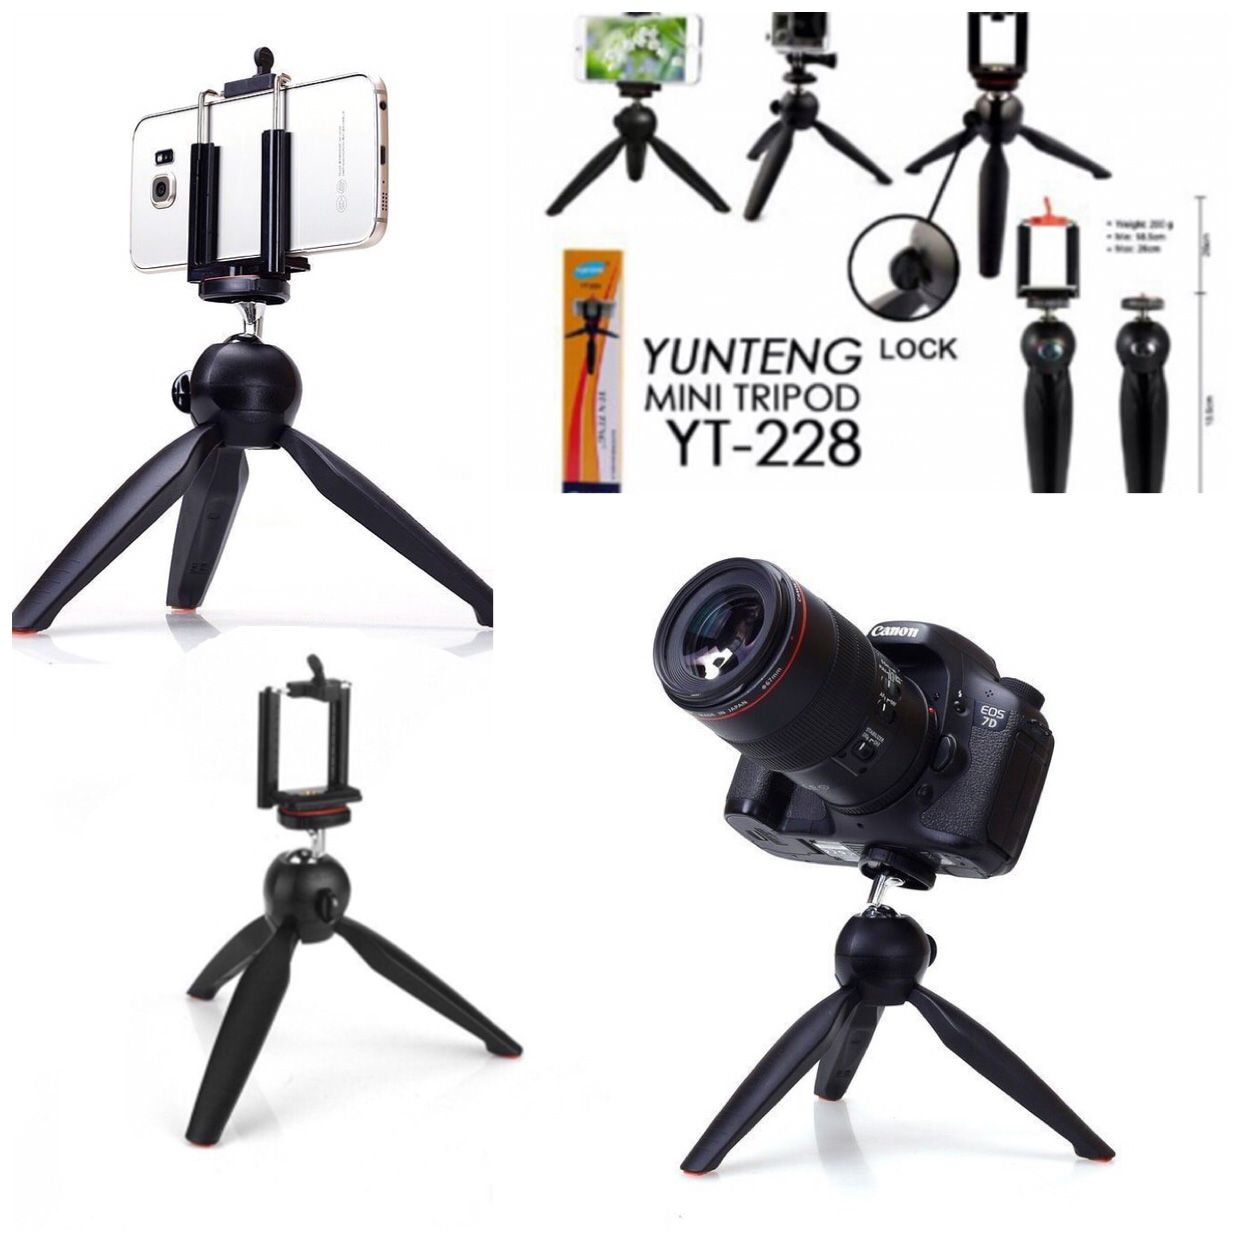 TOTU YUNTENG 228 TRIPOD HOLDER FOR ALL TYPES OF PHONES 1 Tripod Price in India- Buy TOTU YUNTENG 228 TRIPOD HOLDER FOR ALL TYPES OF PHONES 1 Tripod Online ...